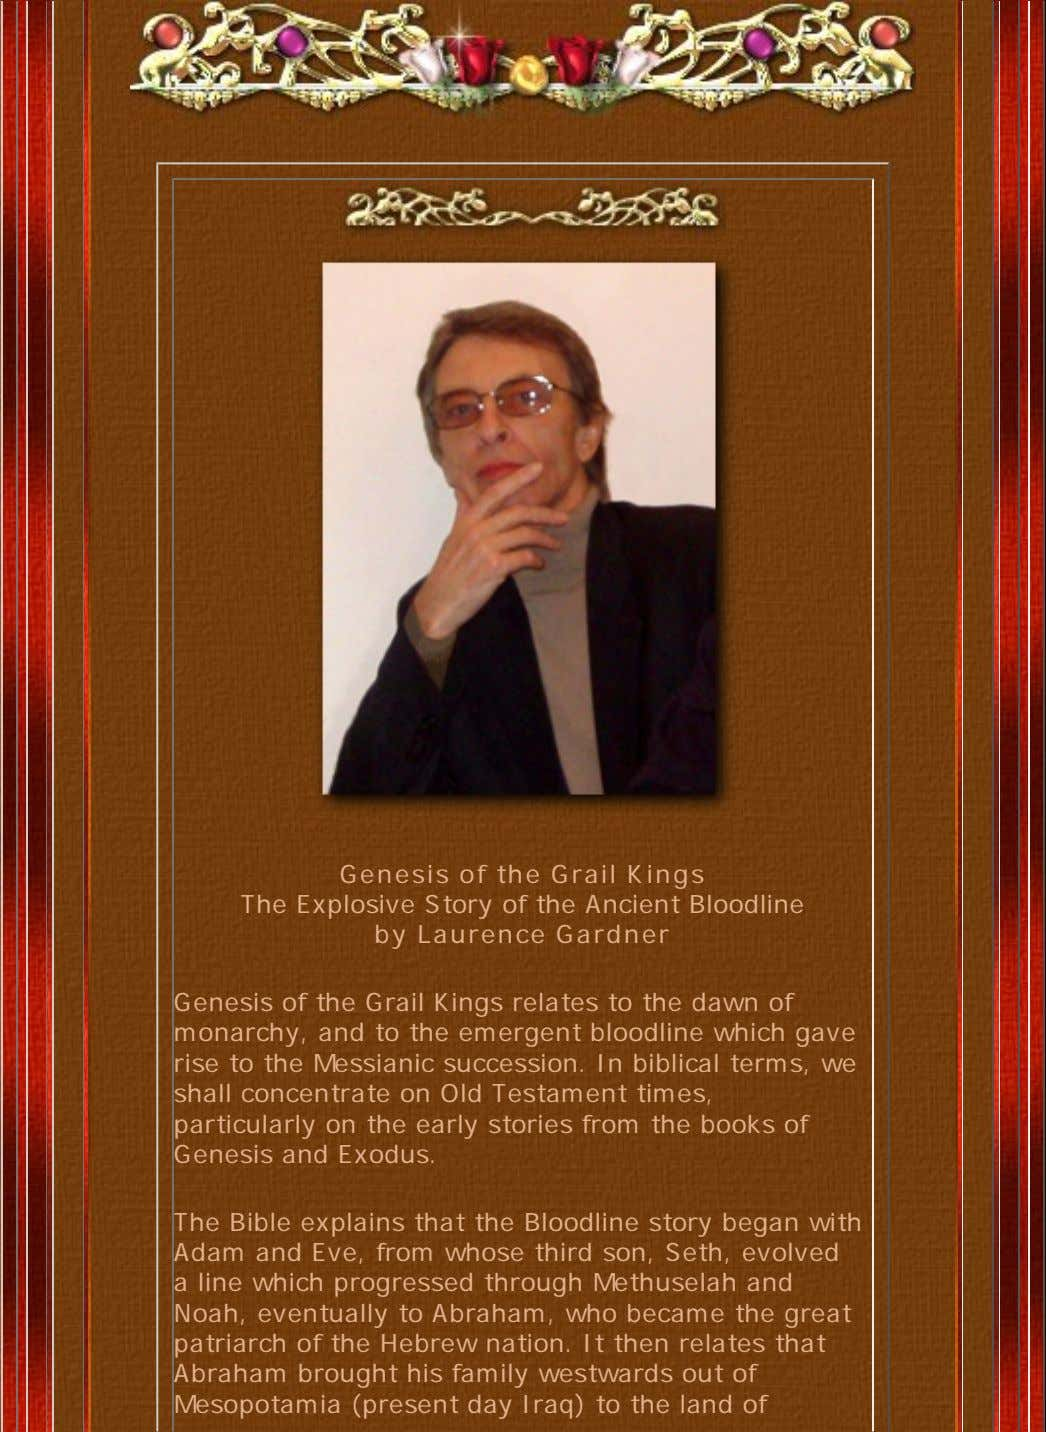 Genesis of the Grail Kings The Explosive Story of the Ancient Bloodline by Laurence Gardner